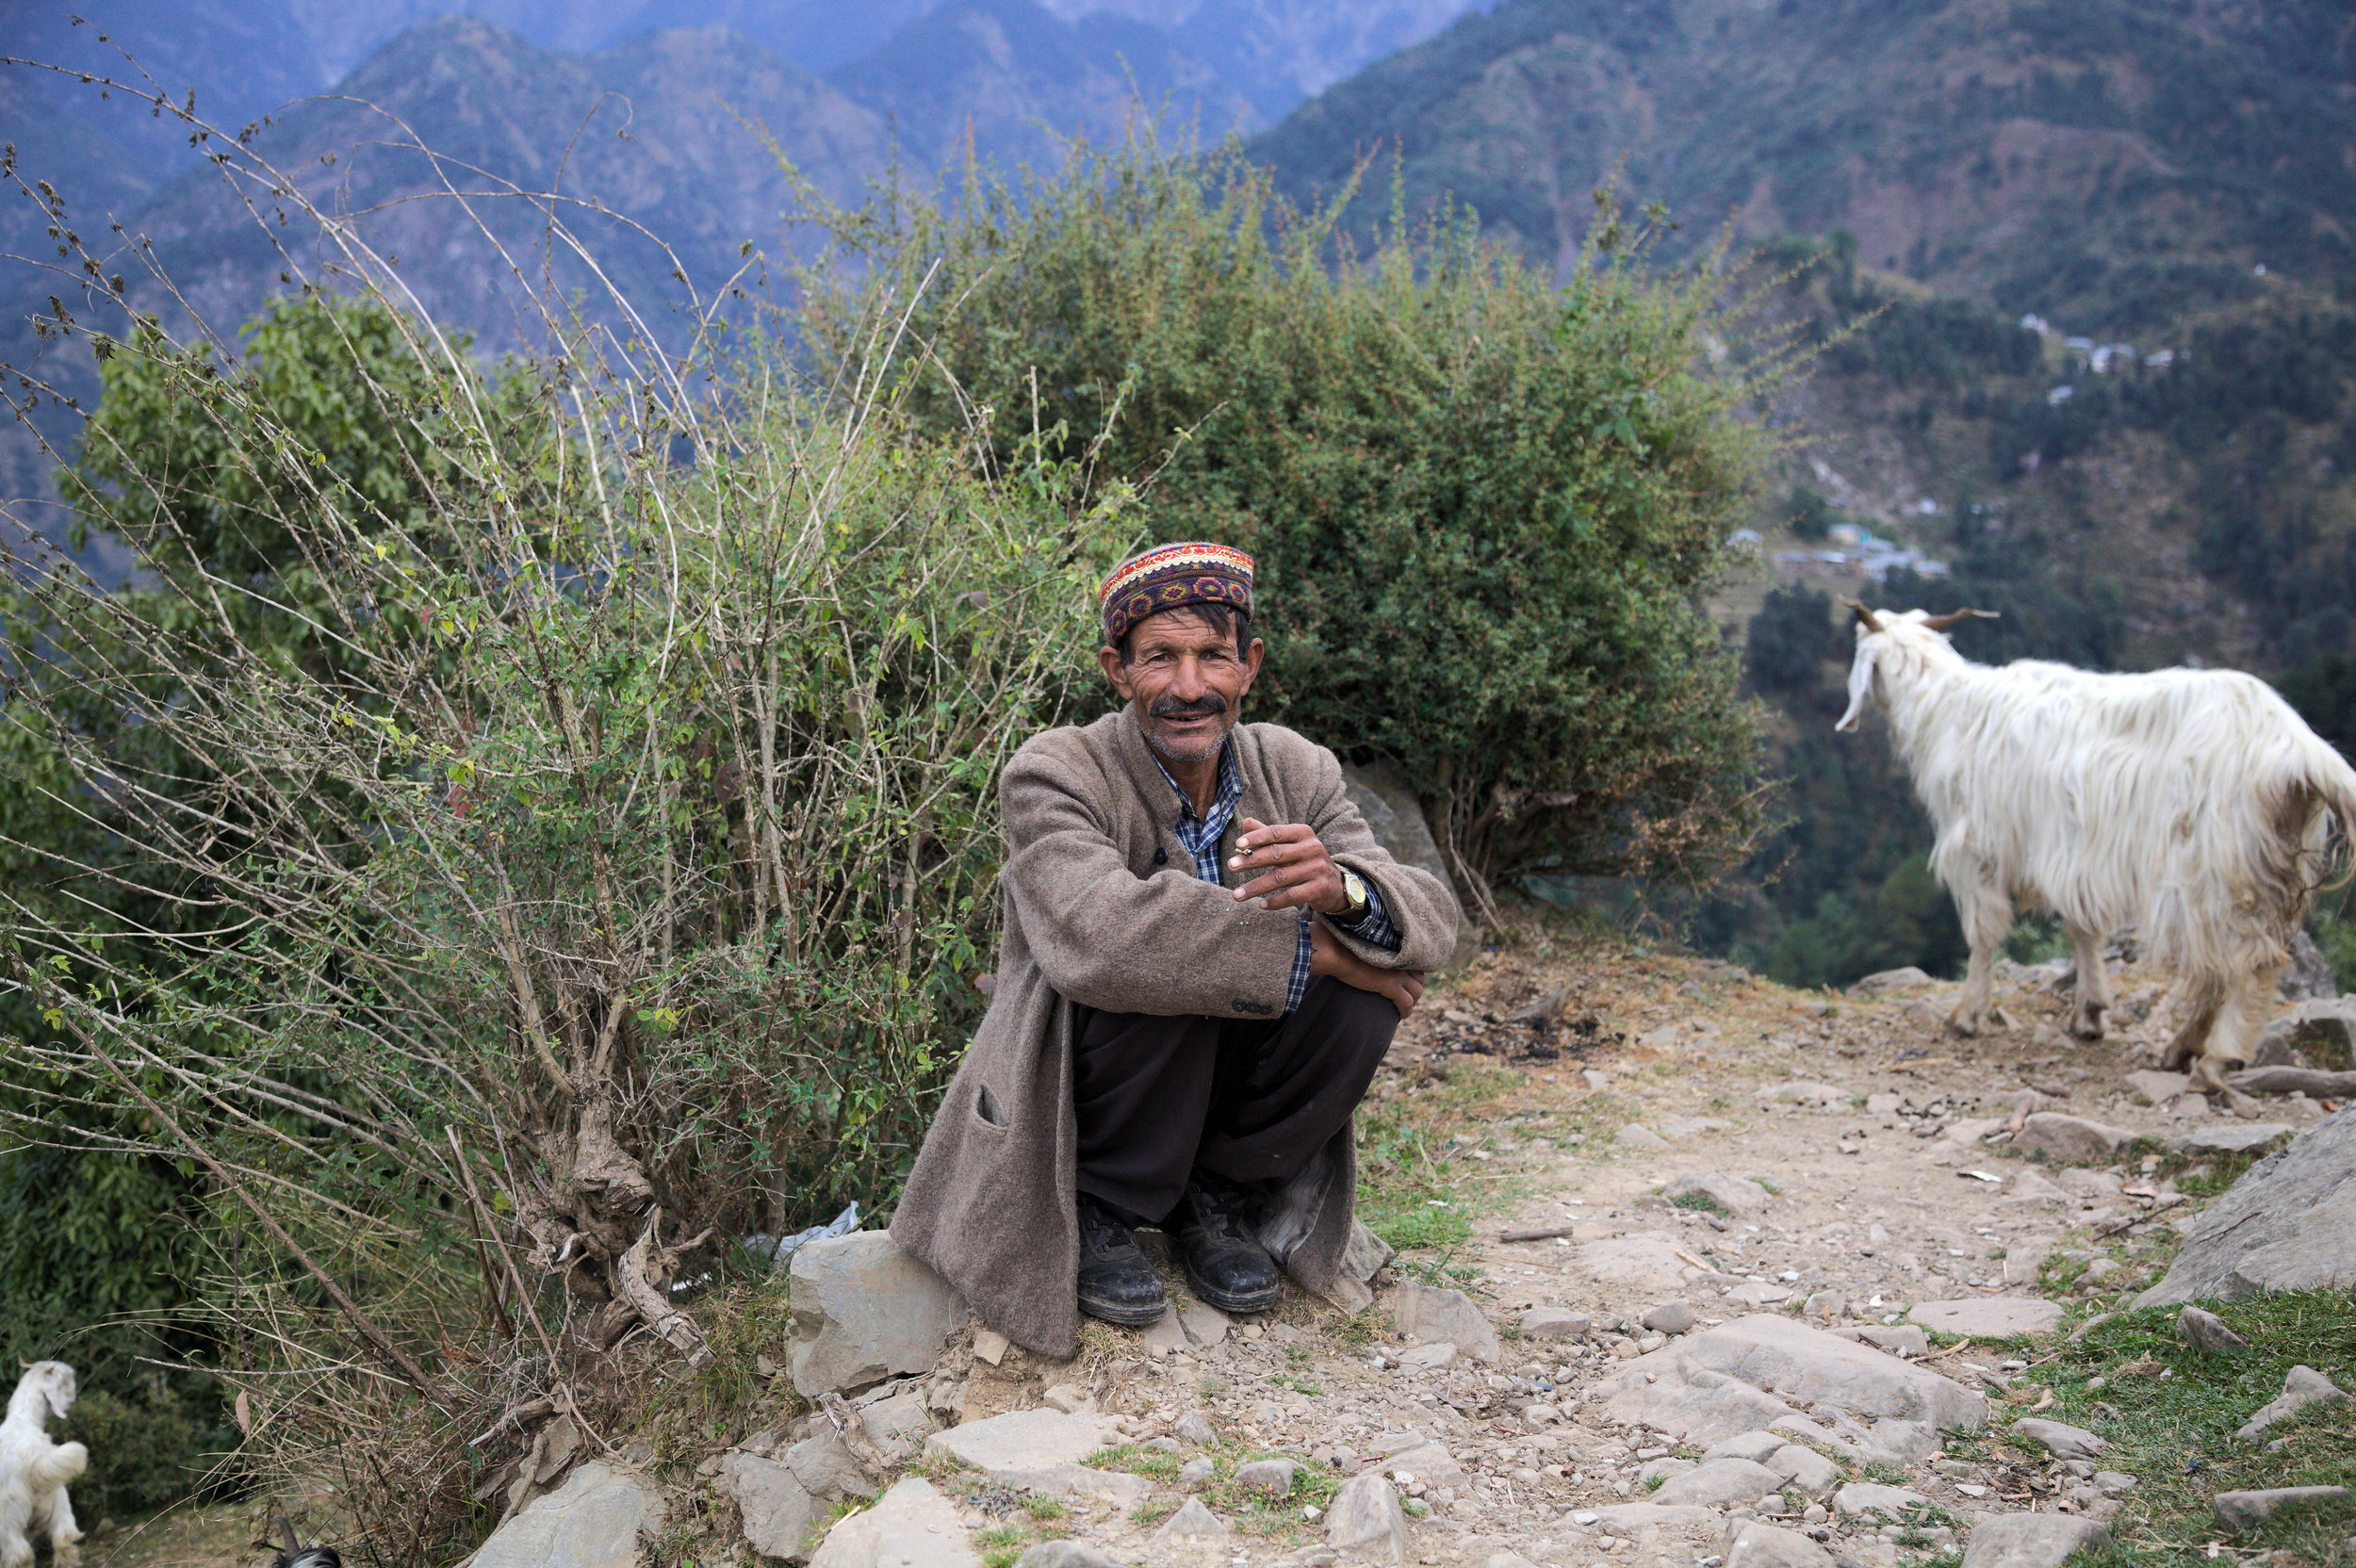 Kisan Chand, a Gaddi shepherd from Dharamsala, sitting outside Naddi village on an November morning. He has just arrived from Indrahar Pass and is heading south for the winter.